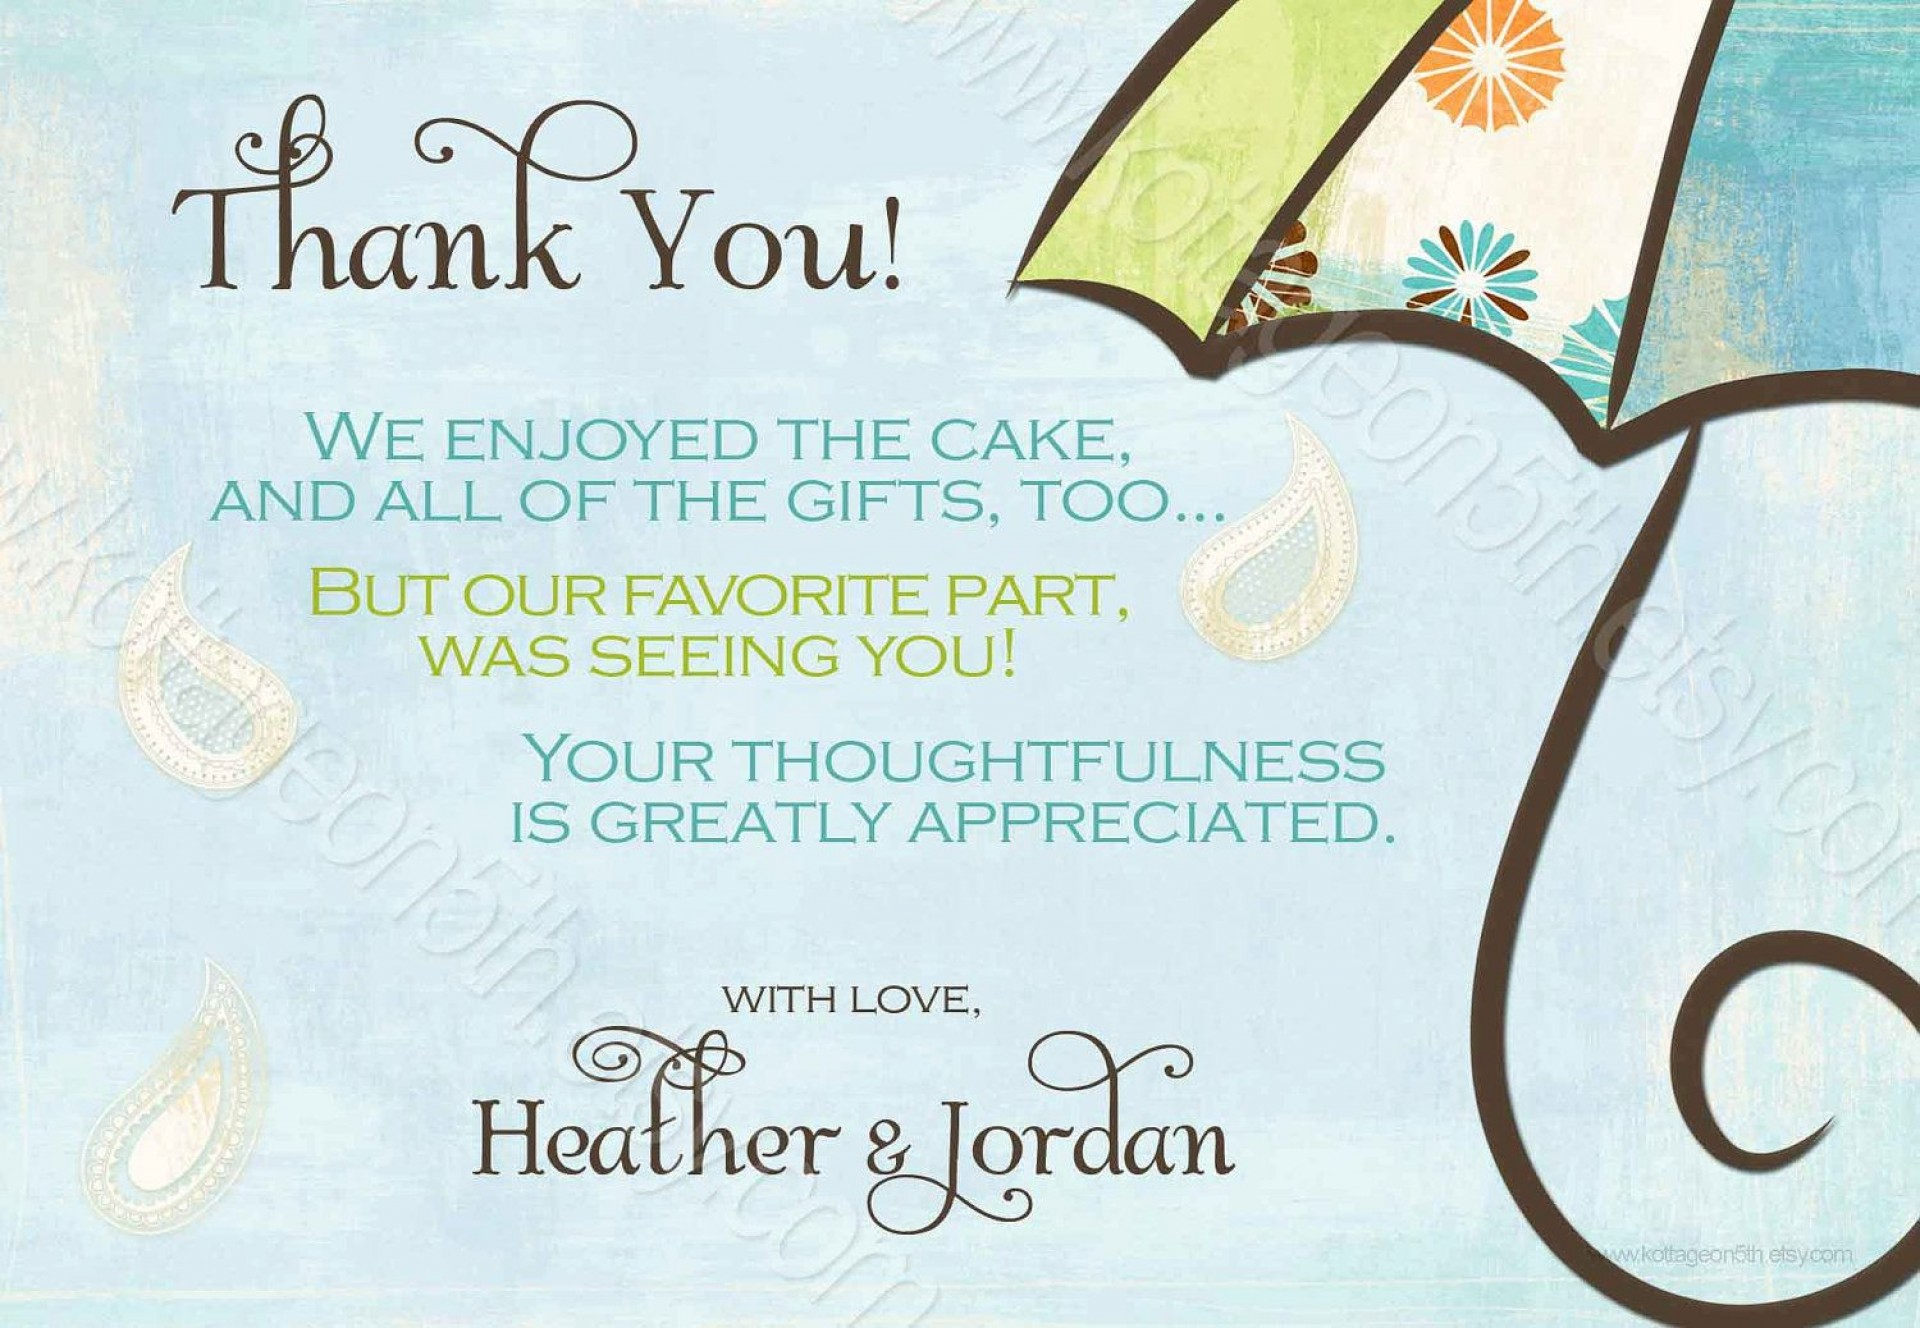 009 Exceptional Thank You Note Wording For Baby Shower Gift High Resolution  Card Sample Example Letter1920